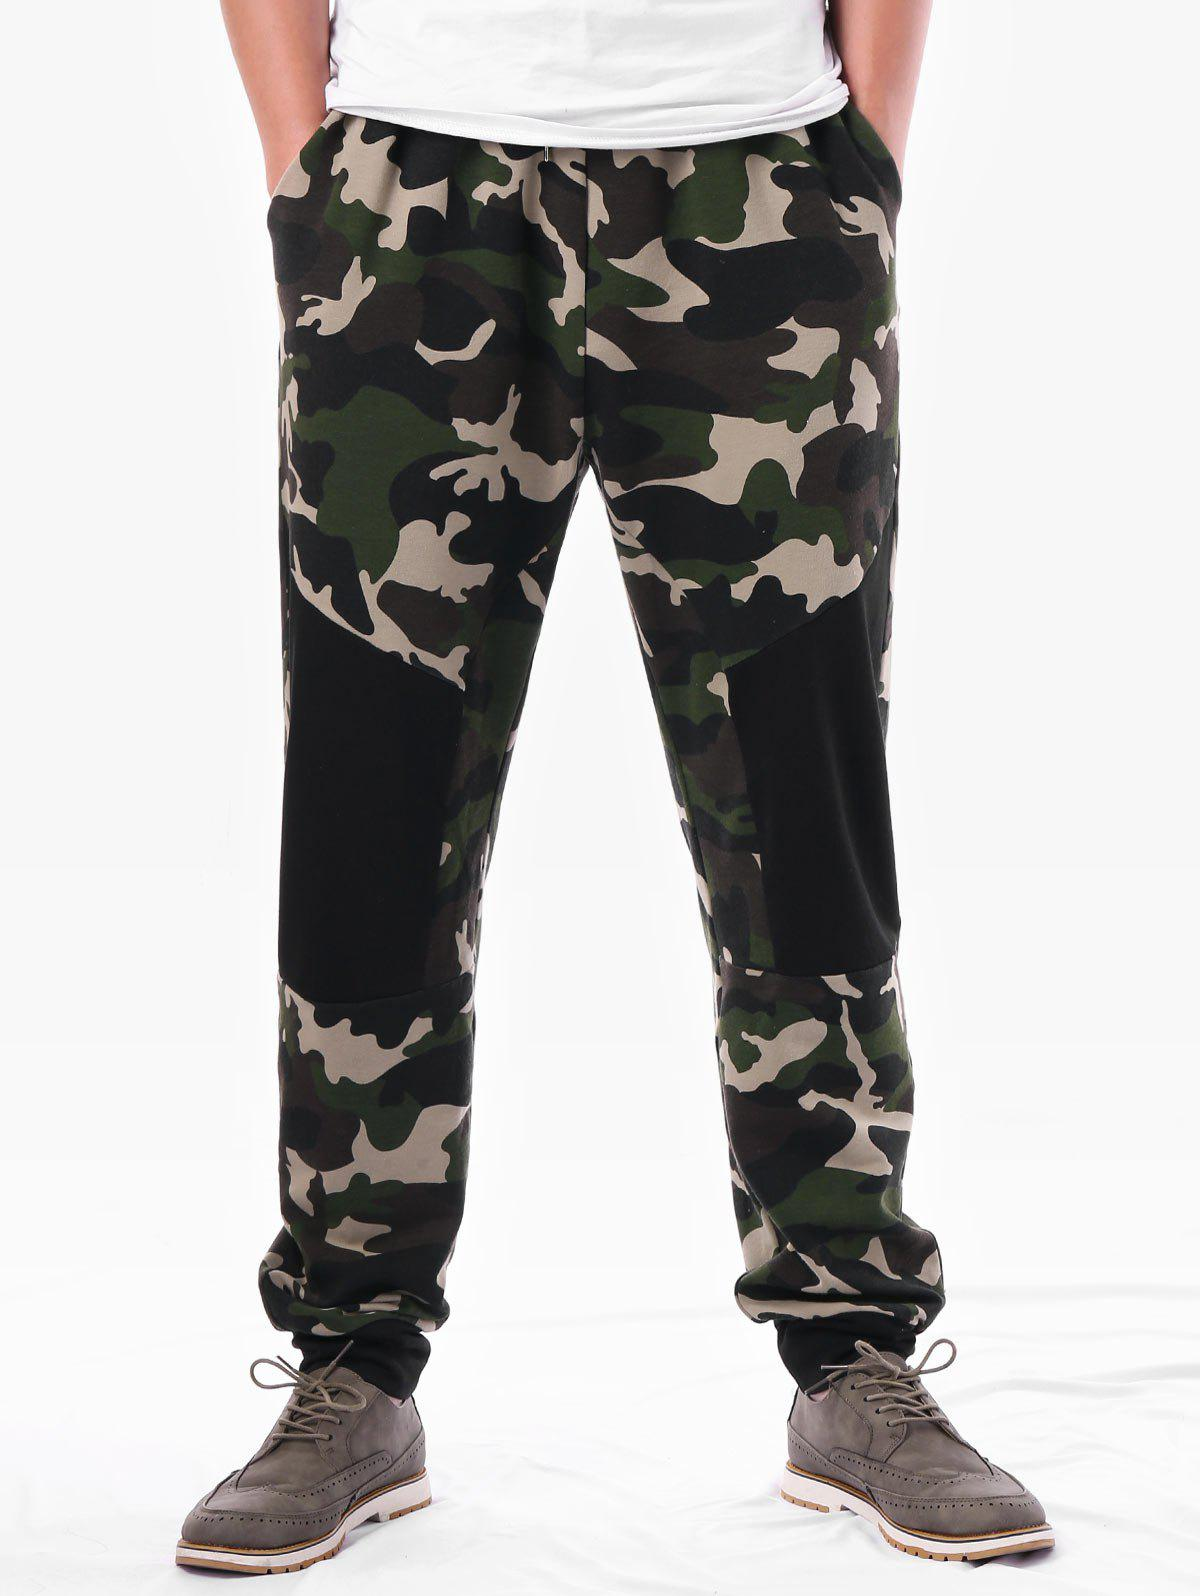 Hot Elastic Waist Camouflage Panel Casual Pants